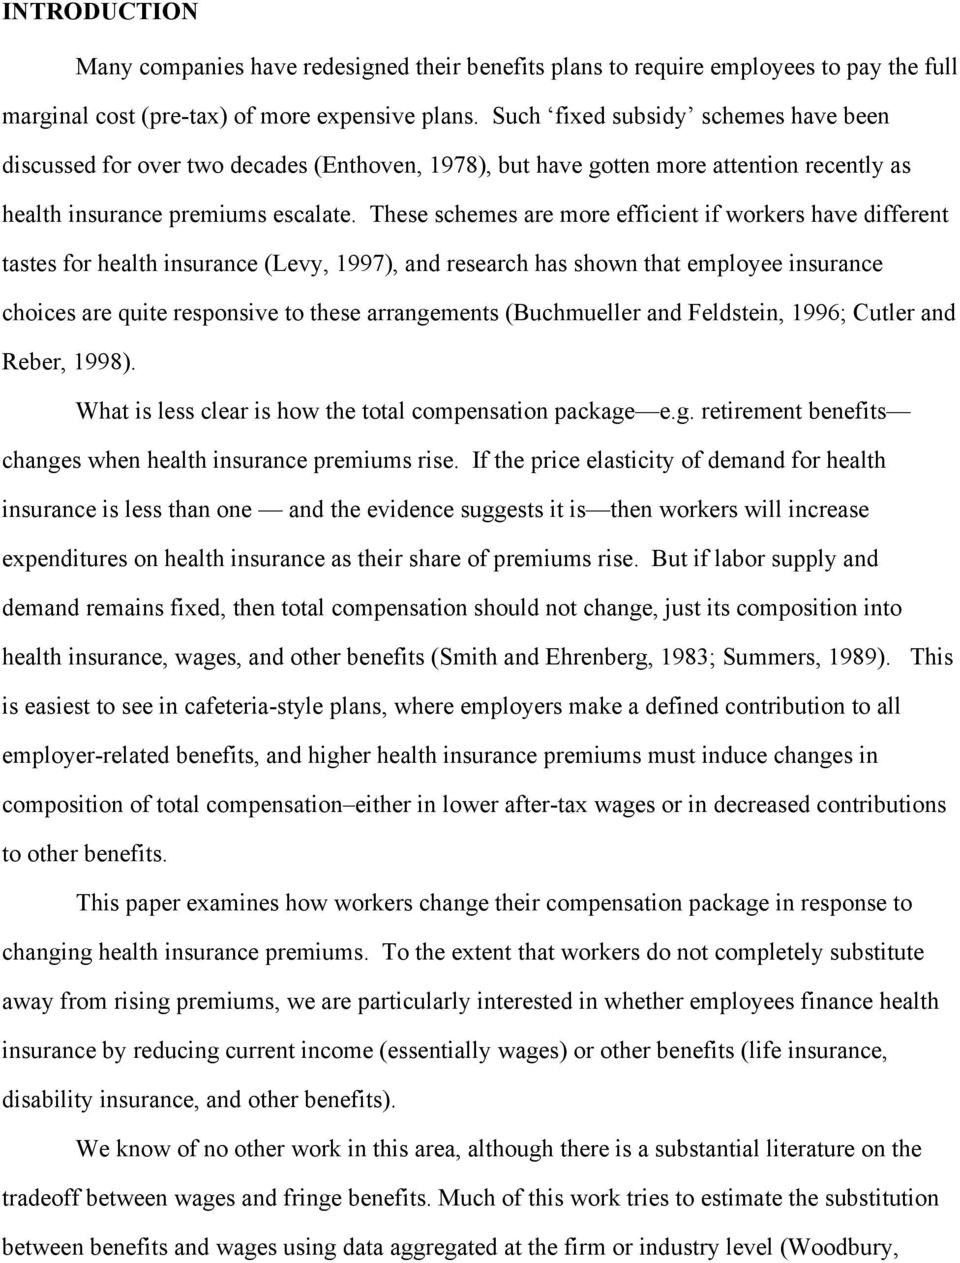 These schemes are more efficient if workers have different tastes for health insurance (Levy, 1997), and research has shown that employee insurance choices are quite responsive to these arrangements